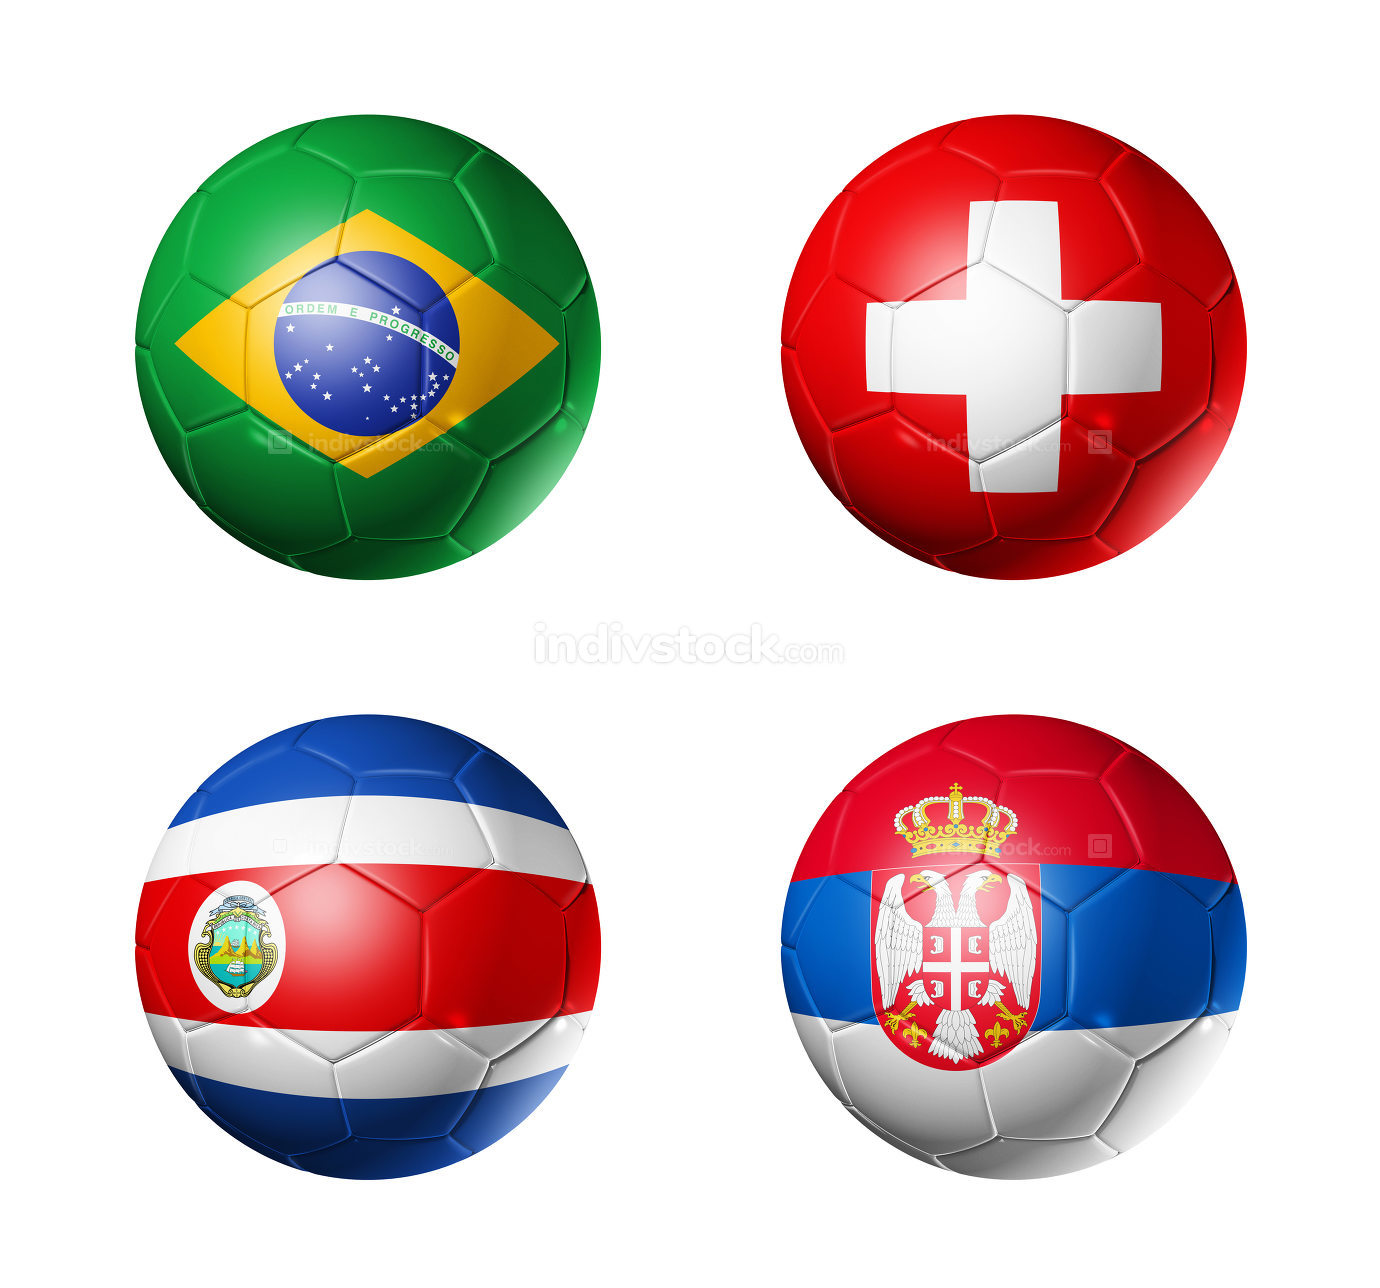 Russia football 2018 group E flags on soccer balls